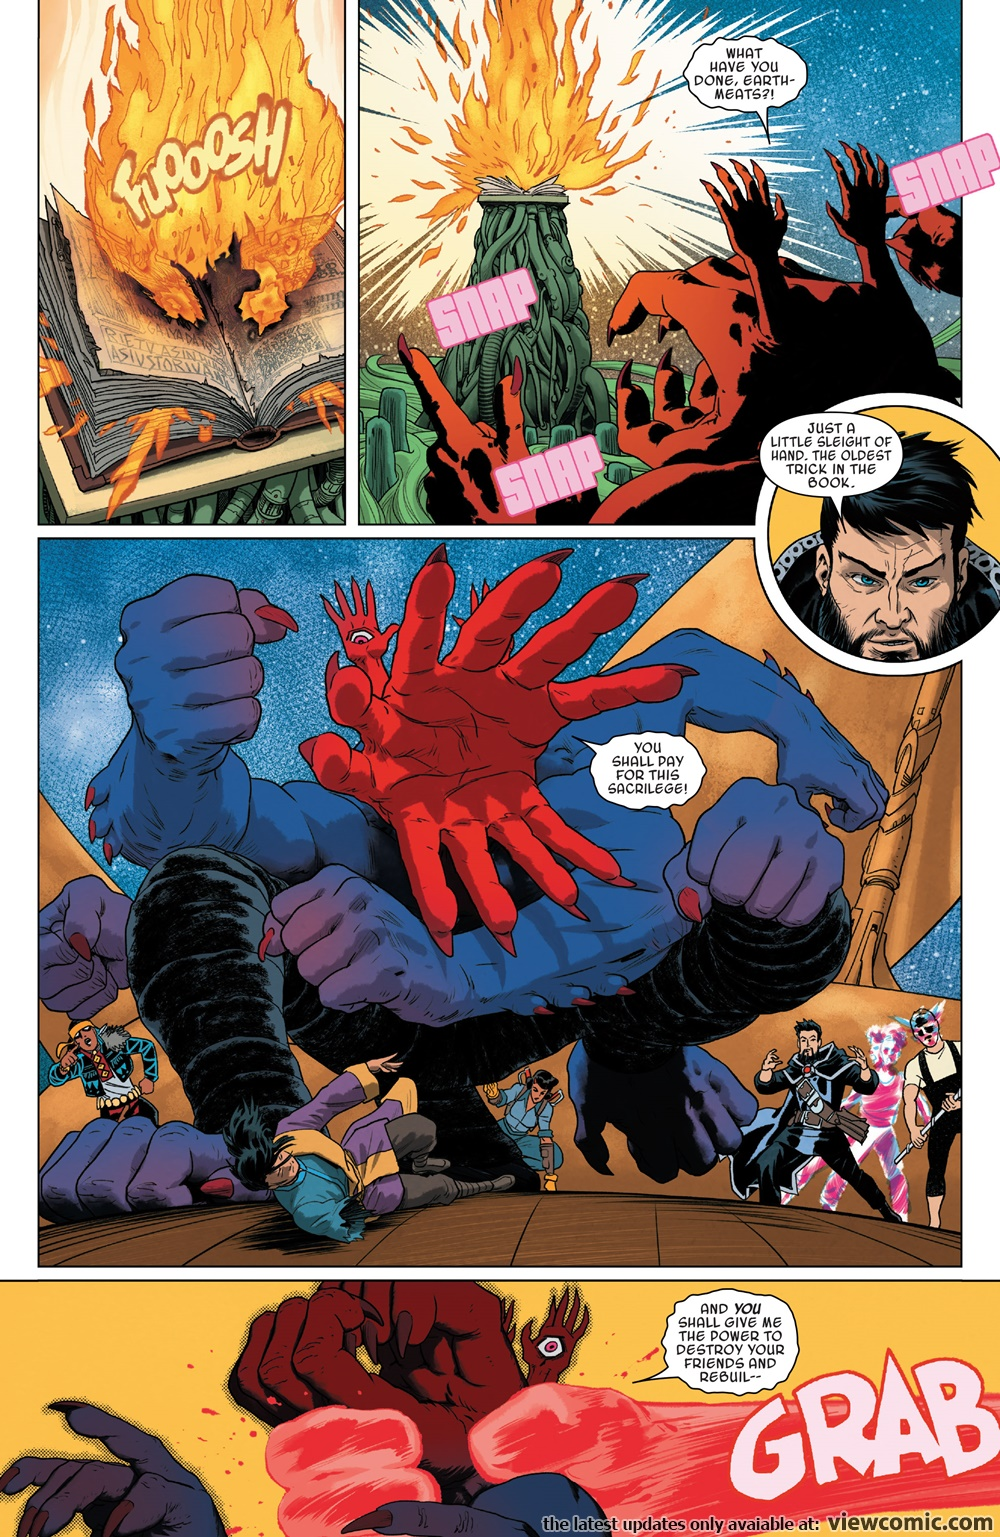 Doctor Strange and the Sorcerers Supreme 009 (2017) | Vietcomic.net reading comics online for free